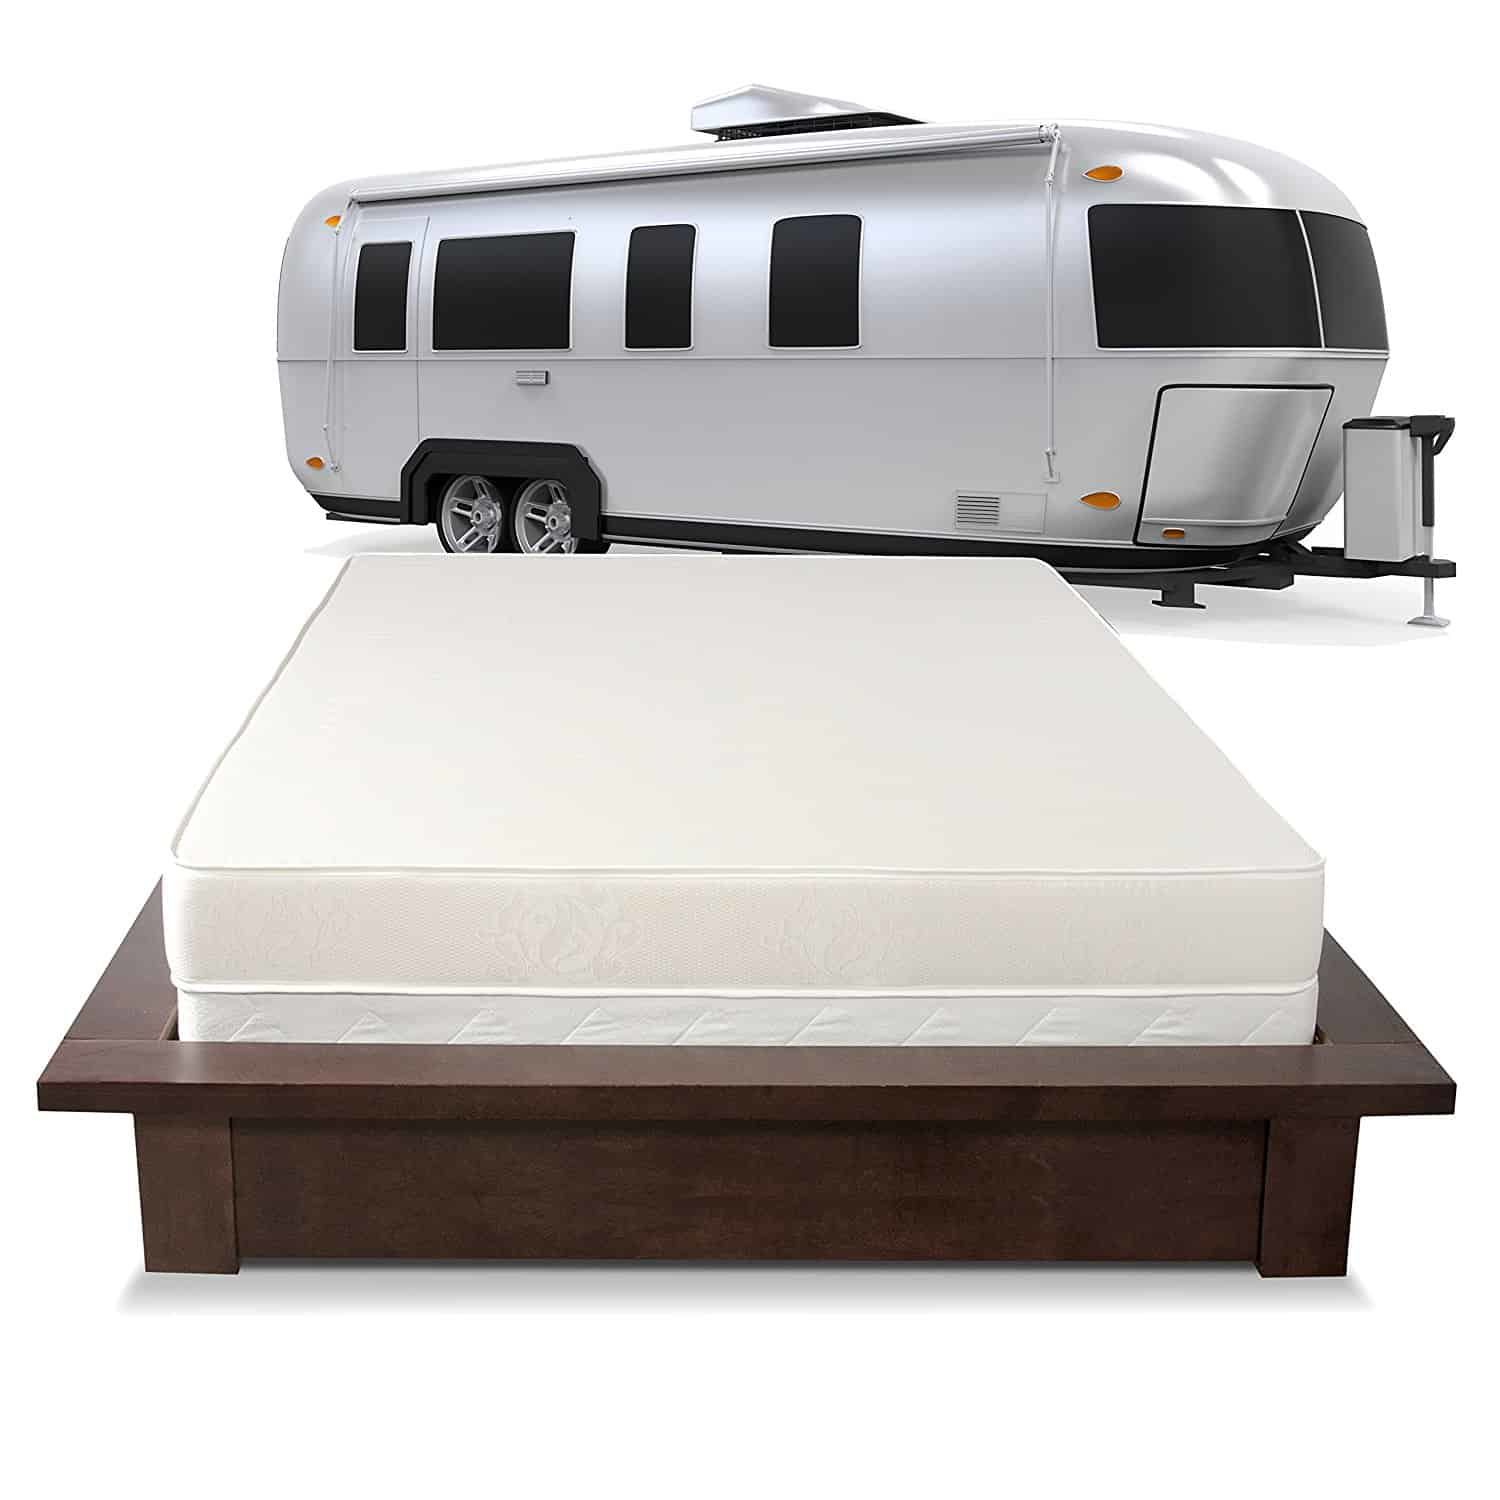 rv mattress sizes types and places to buy them the sleep judge. Black Bedroom Furniture Sets. Home Design Ideas